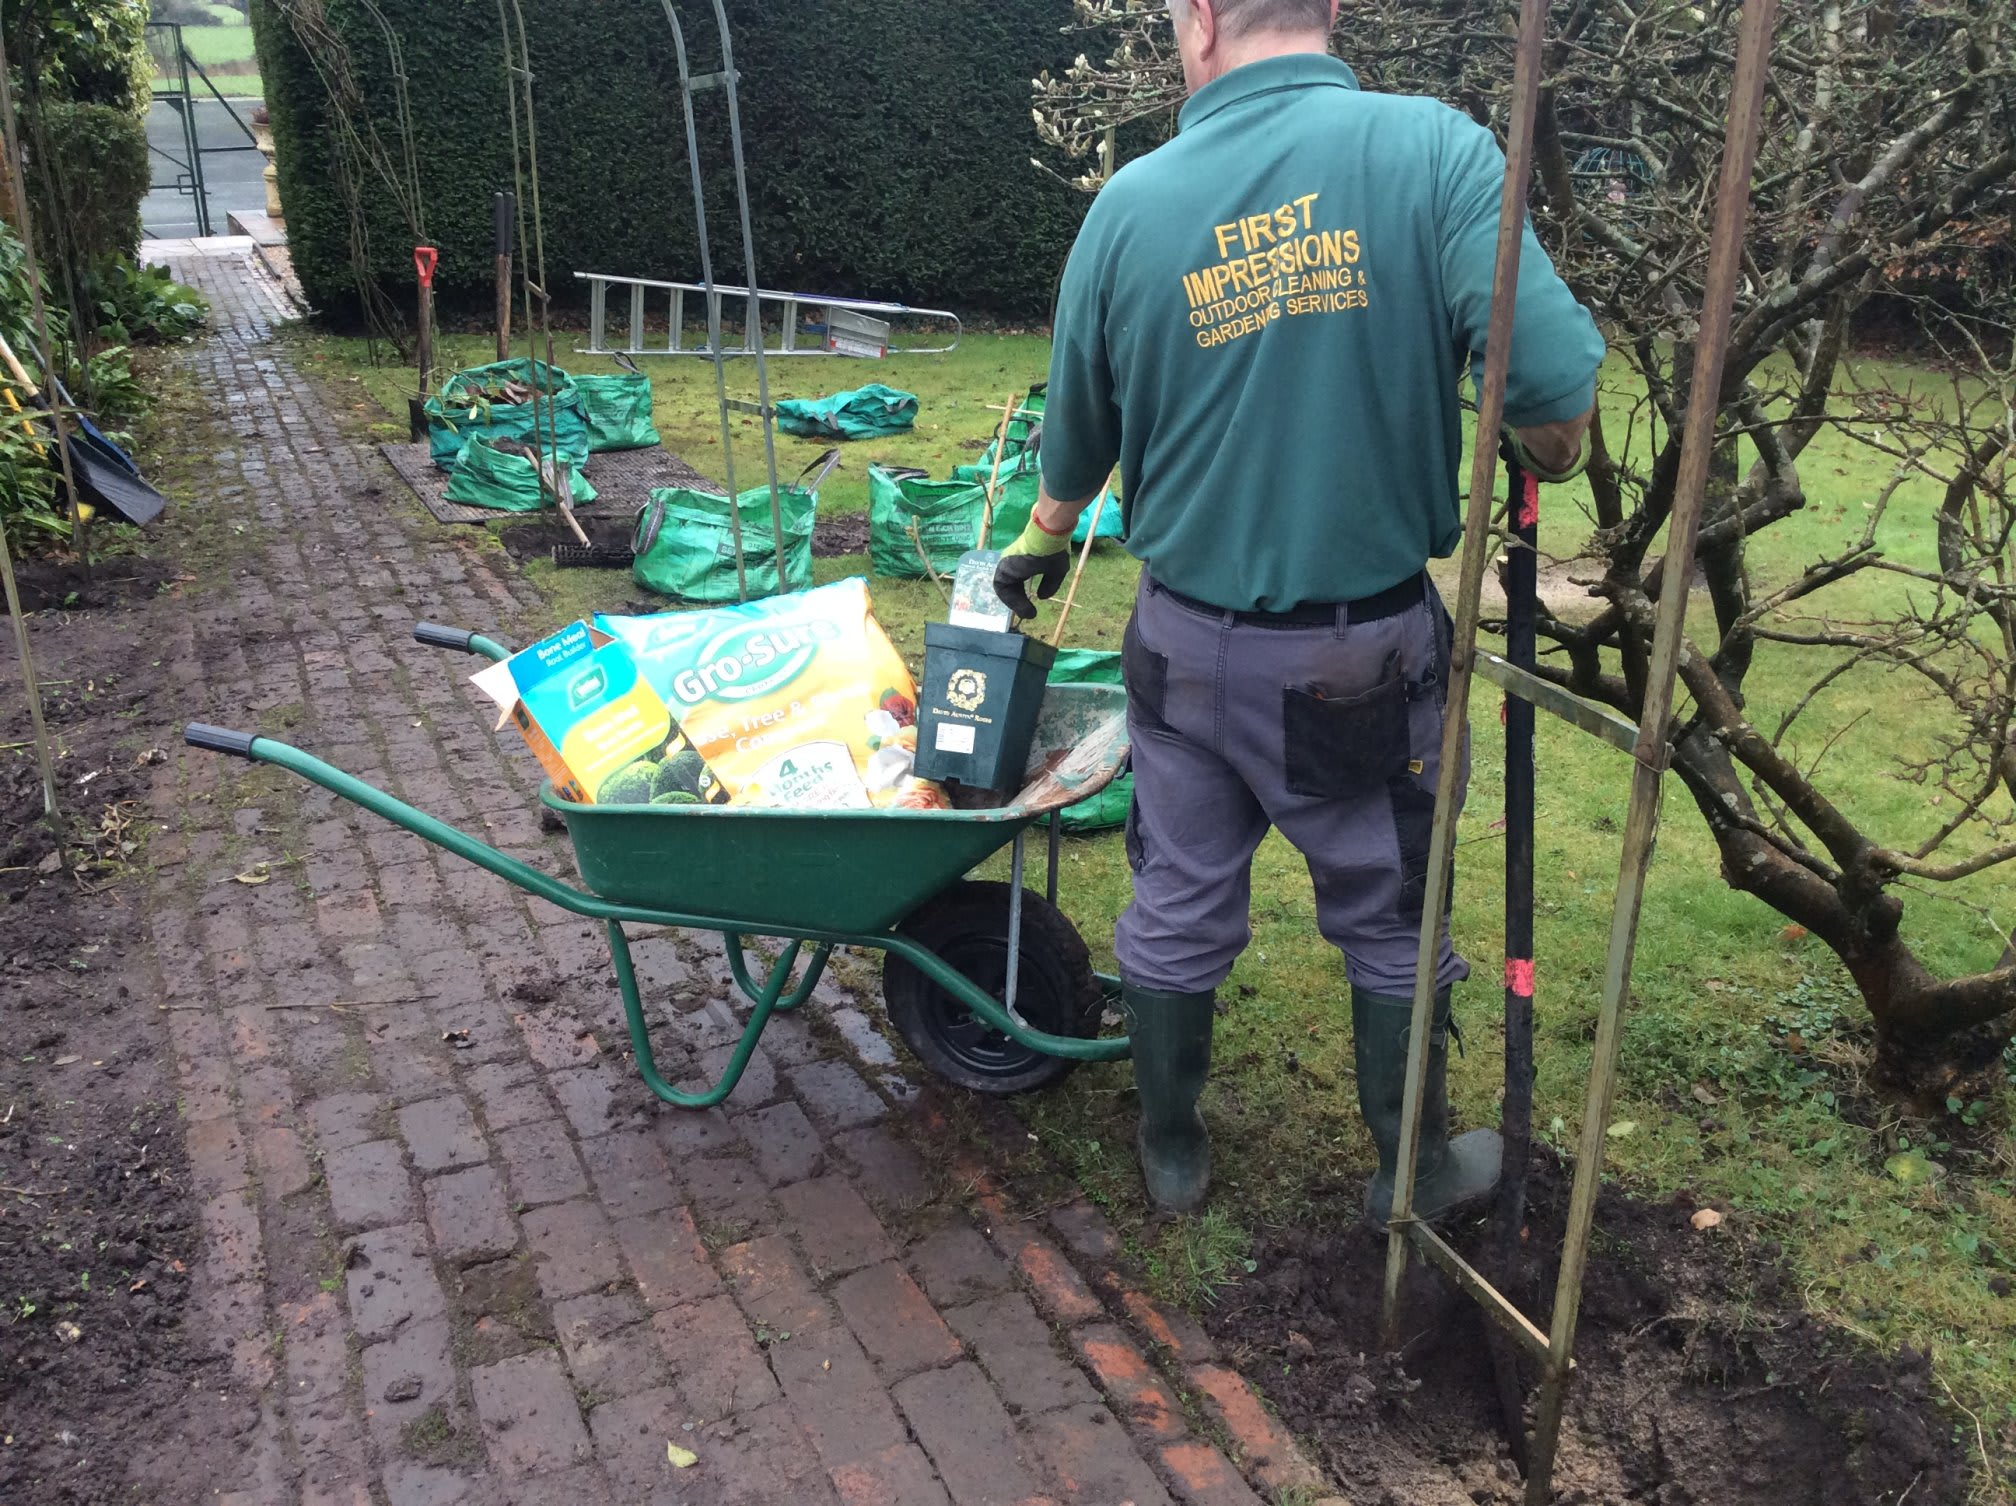 First impressions gardening outdoor cleaning services for Cleaning and gardening services